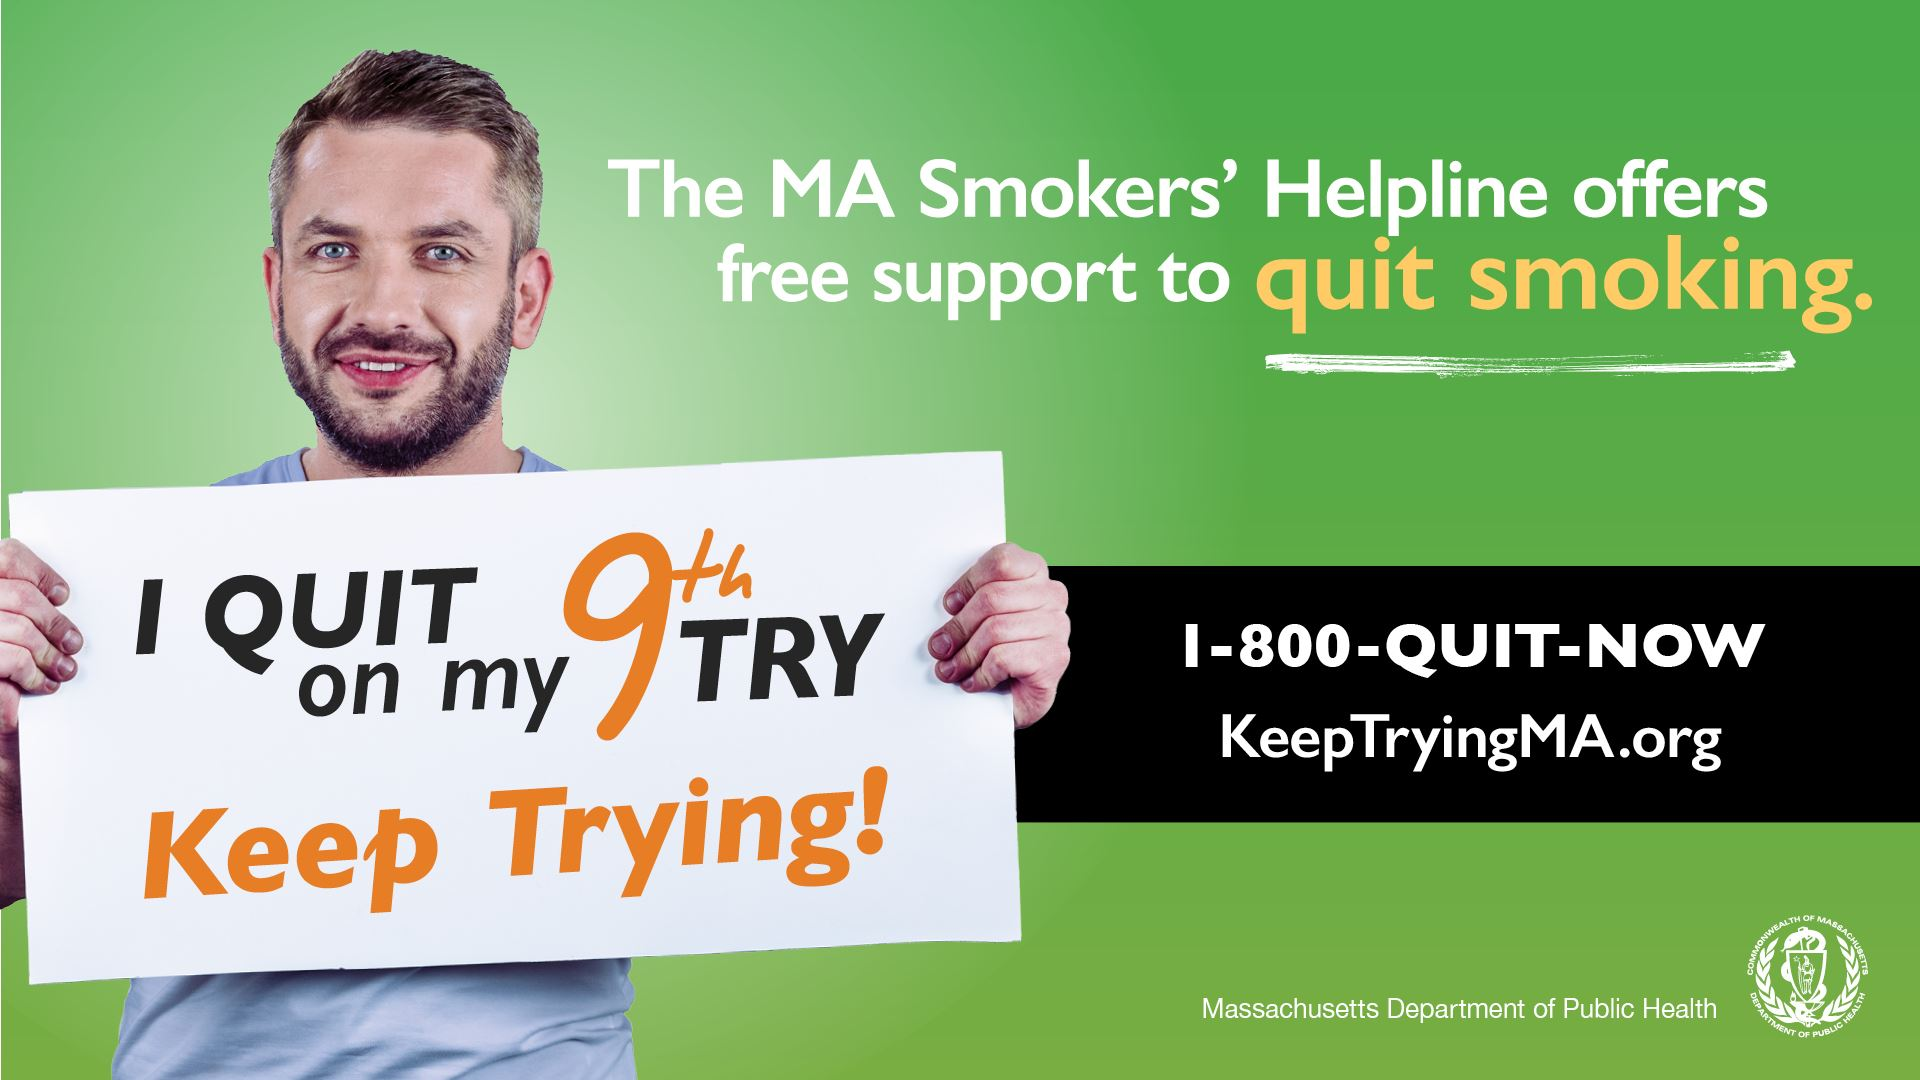 Man holding a sign that he quit after 9 tries. Tobacco Cessation resource.